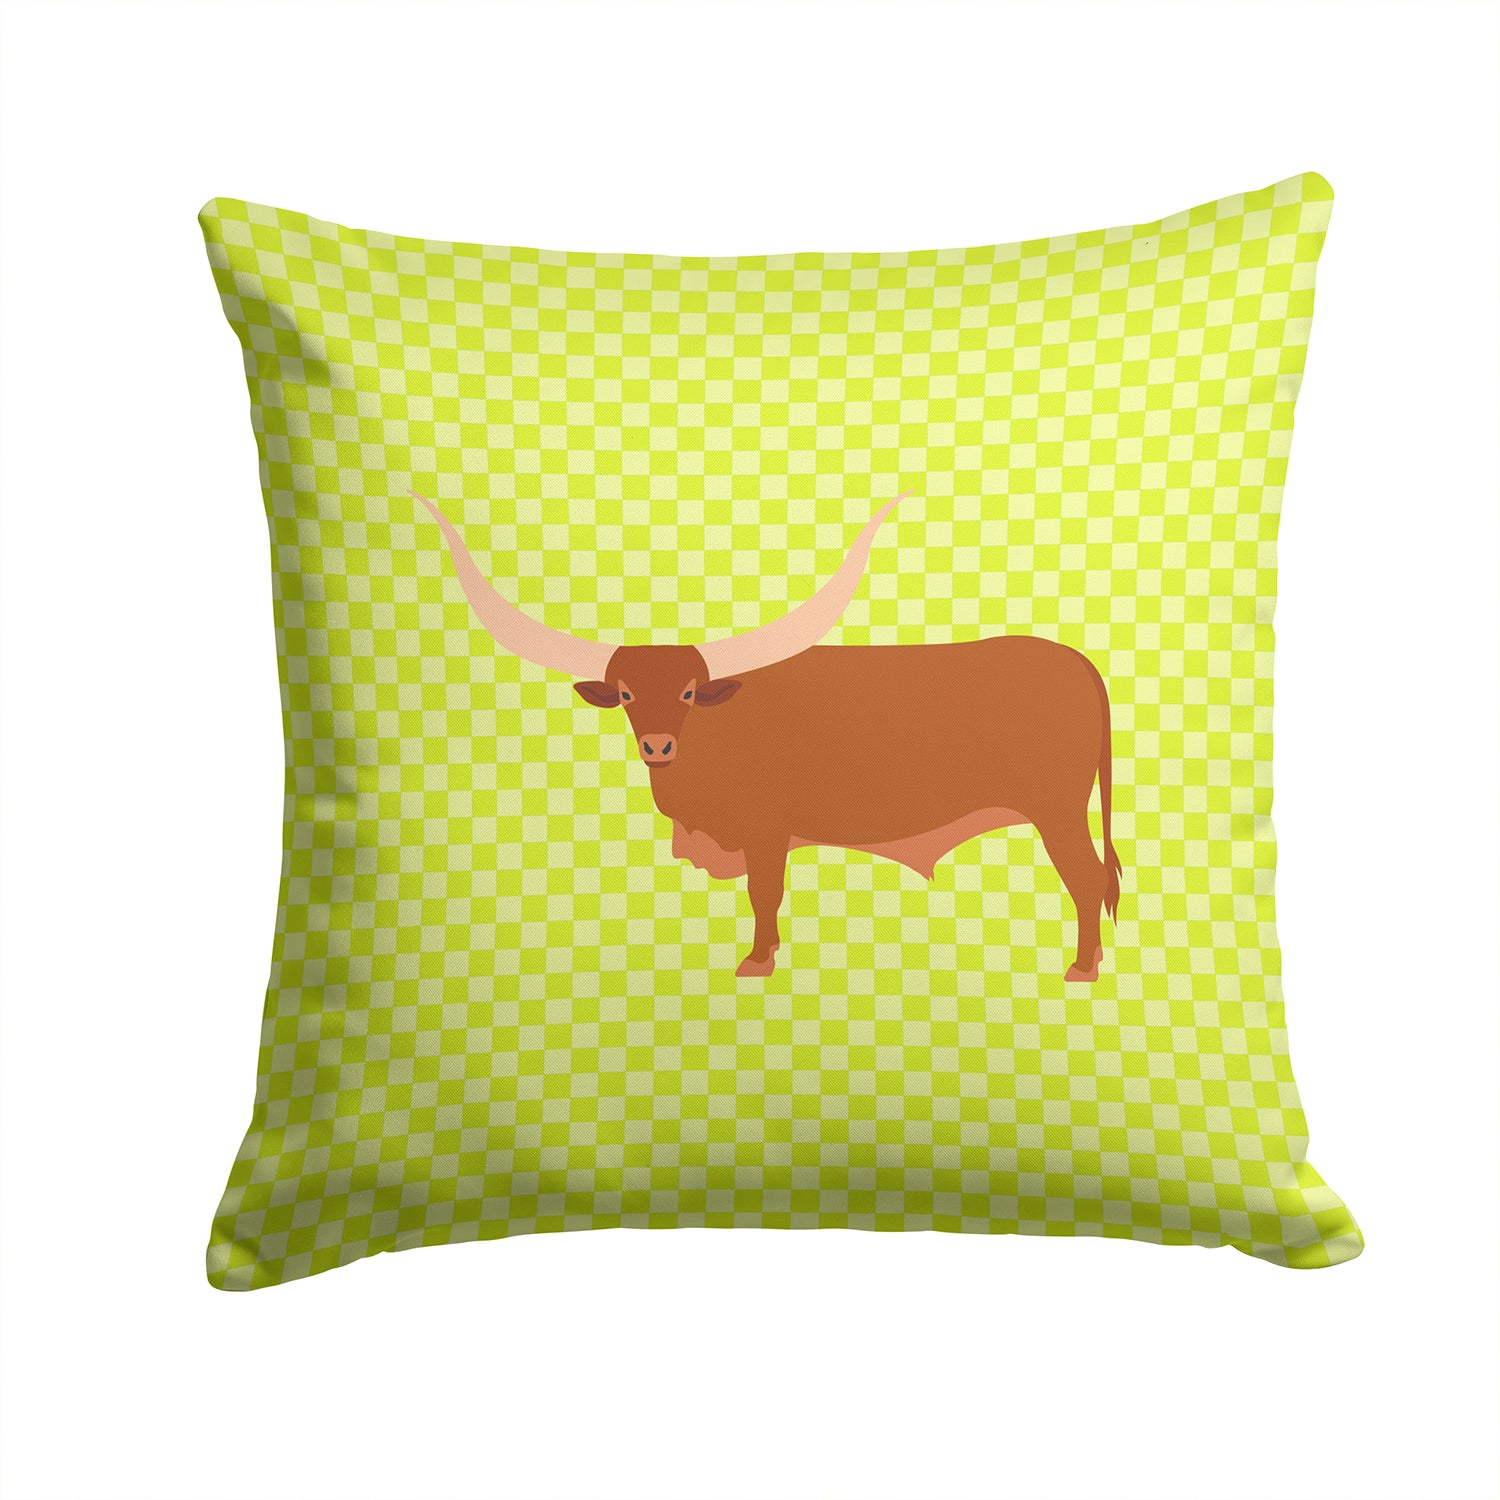 Ankole-Watusu Cow Green Fabric Decorative Pillow BB7649PW1414 by Caroline's Treasures